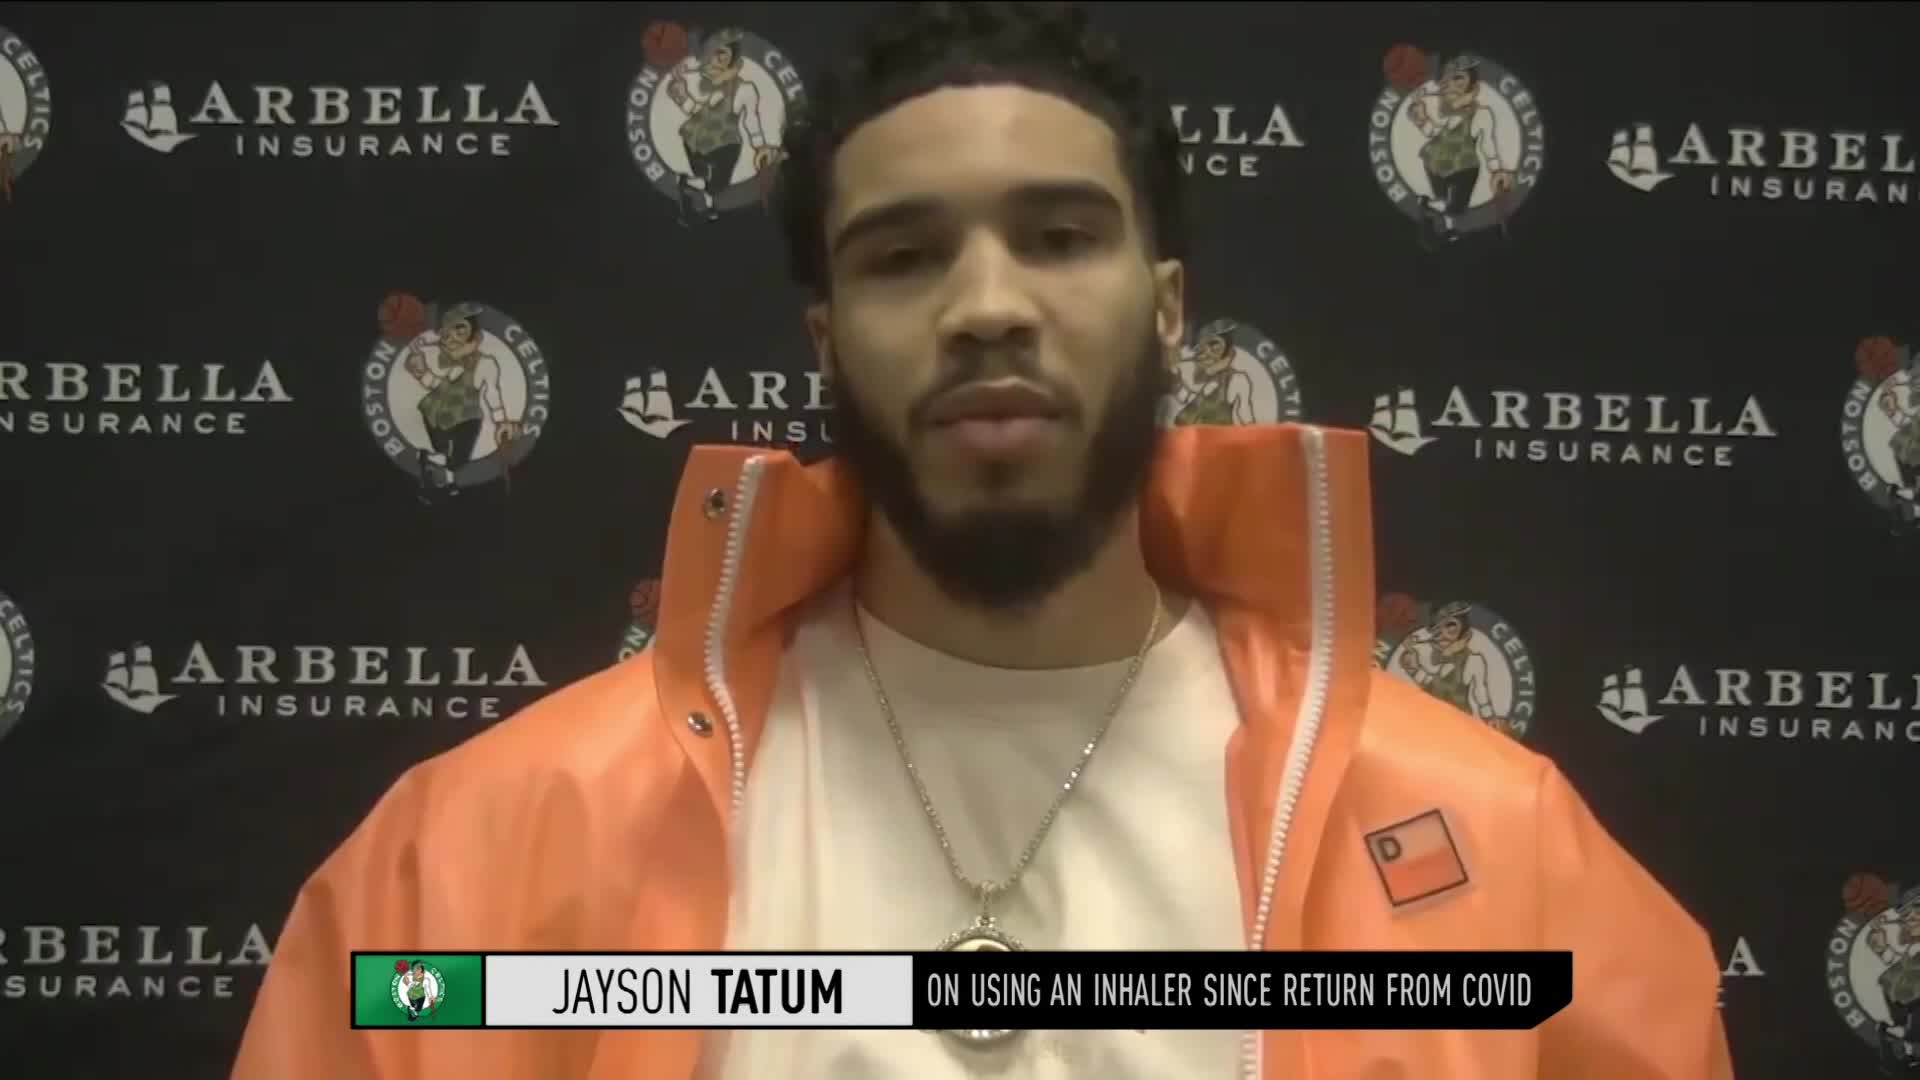 Jayson Tatum 'I take an inhaler before the game since I've tested positive'